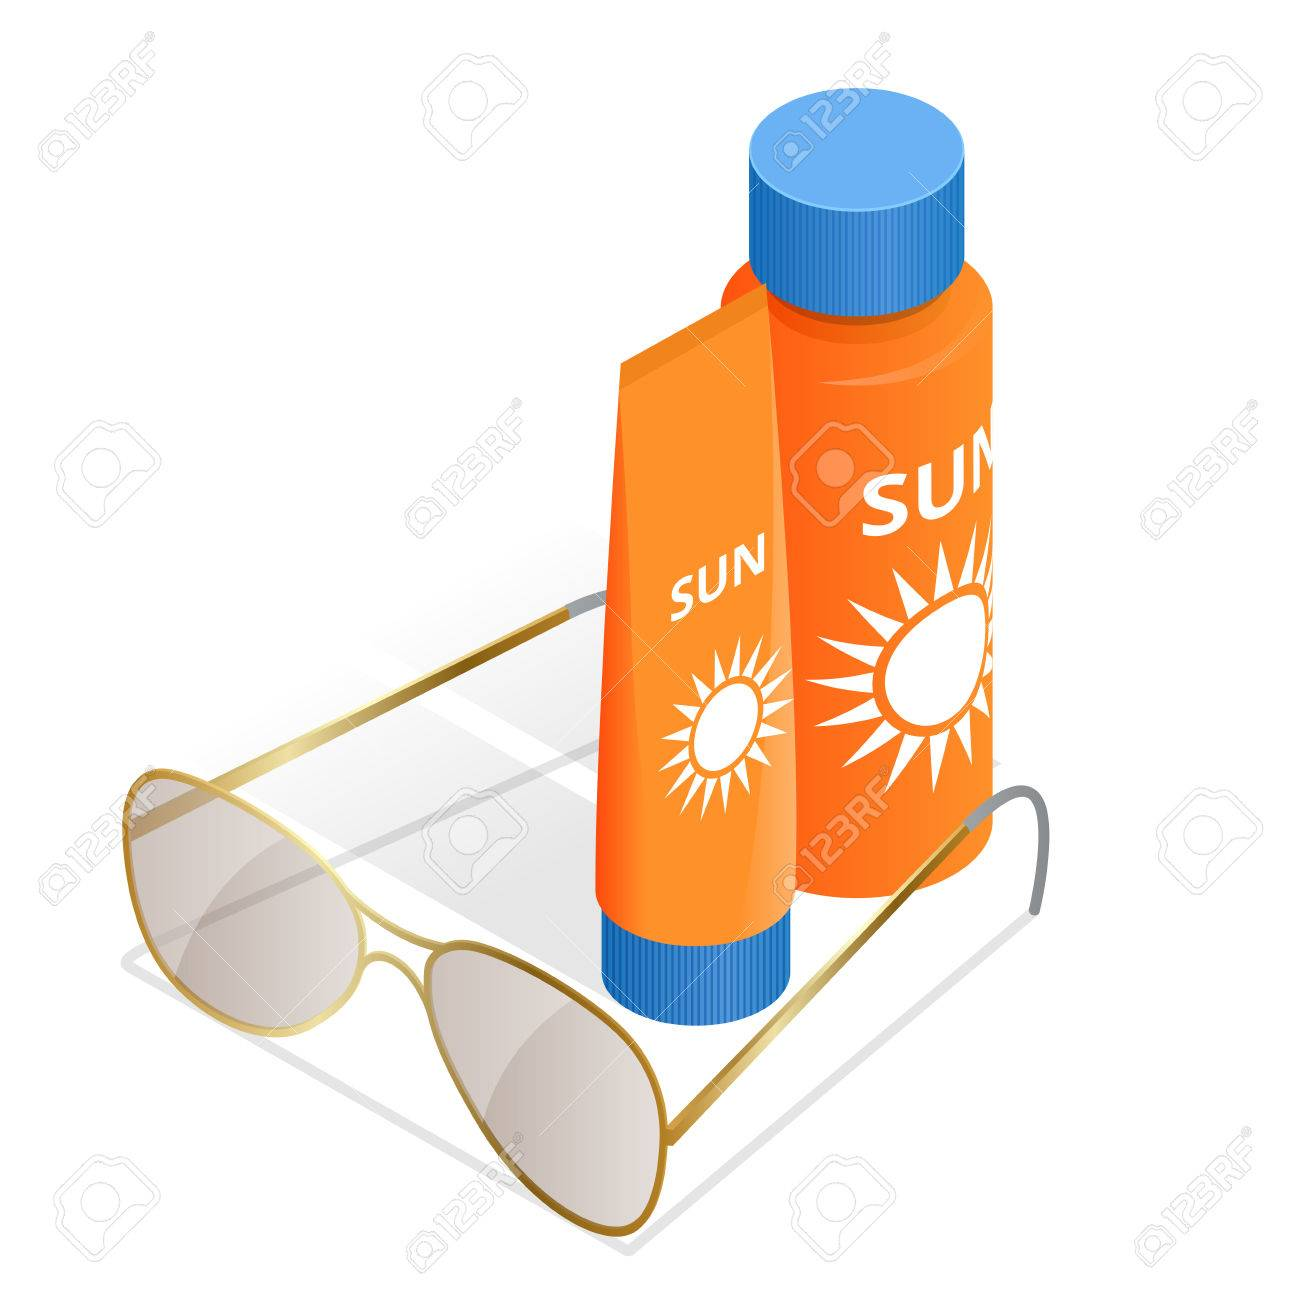 Sunglasses and sunscreen clipart picture royalty free stock Sunscreen clipart sunglasses - 17 transparent clip arts ... picture royalty free stock